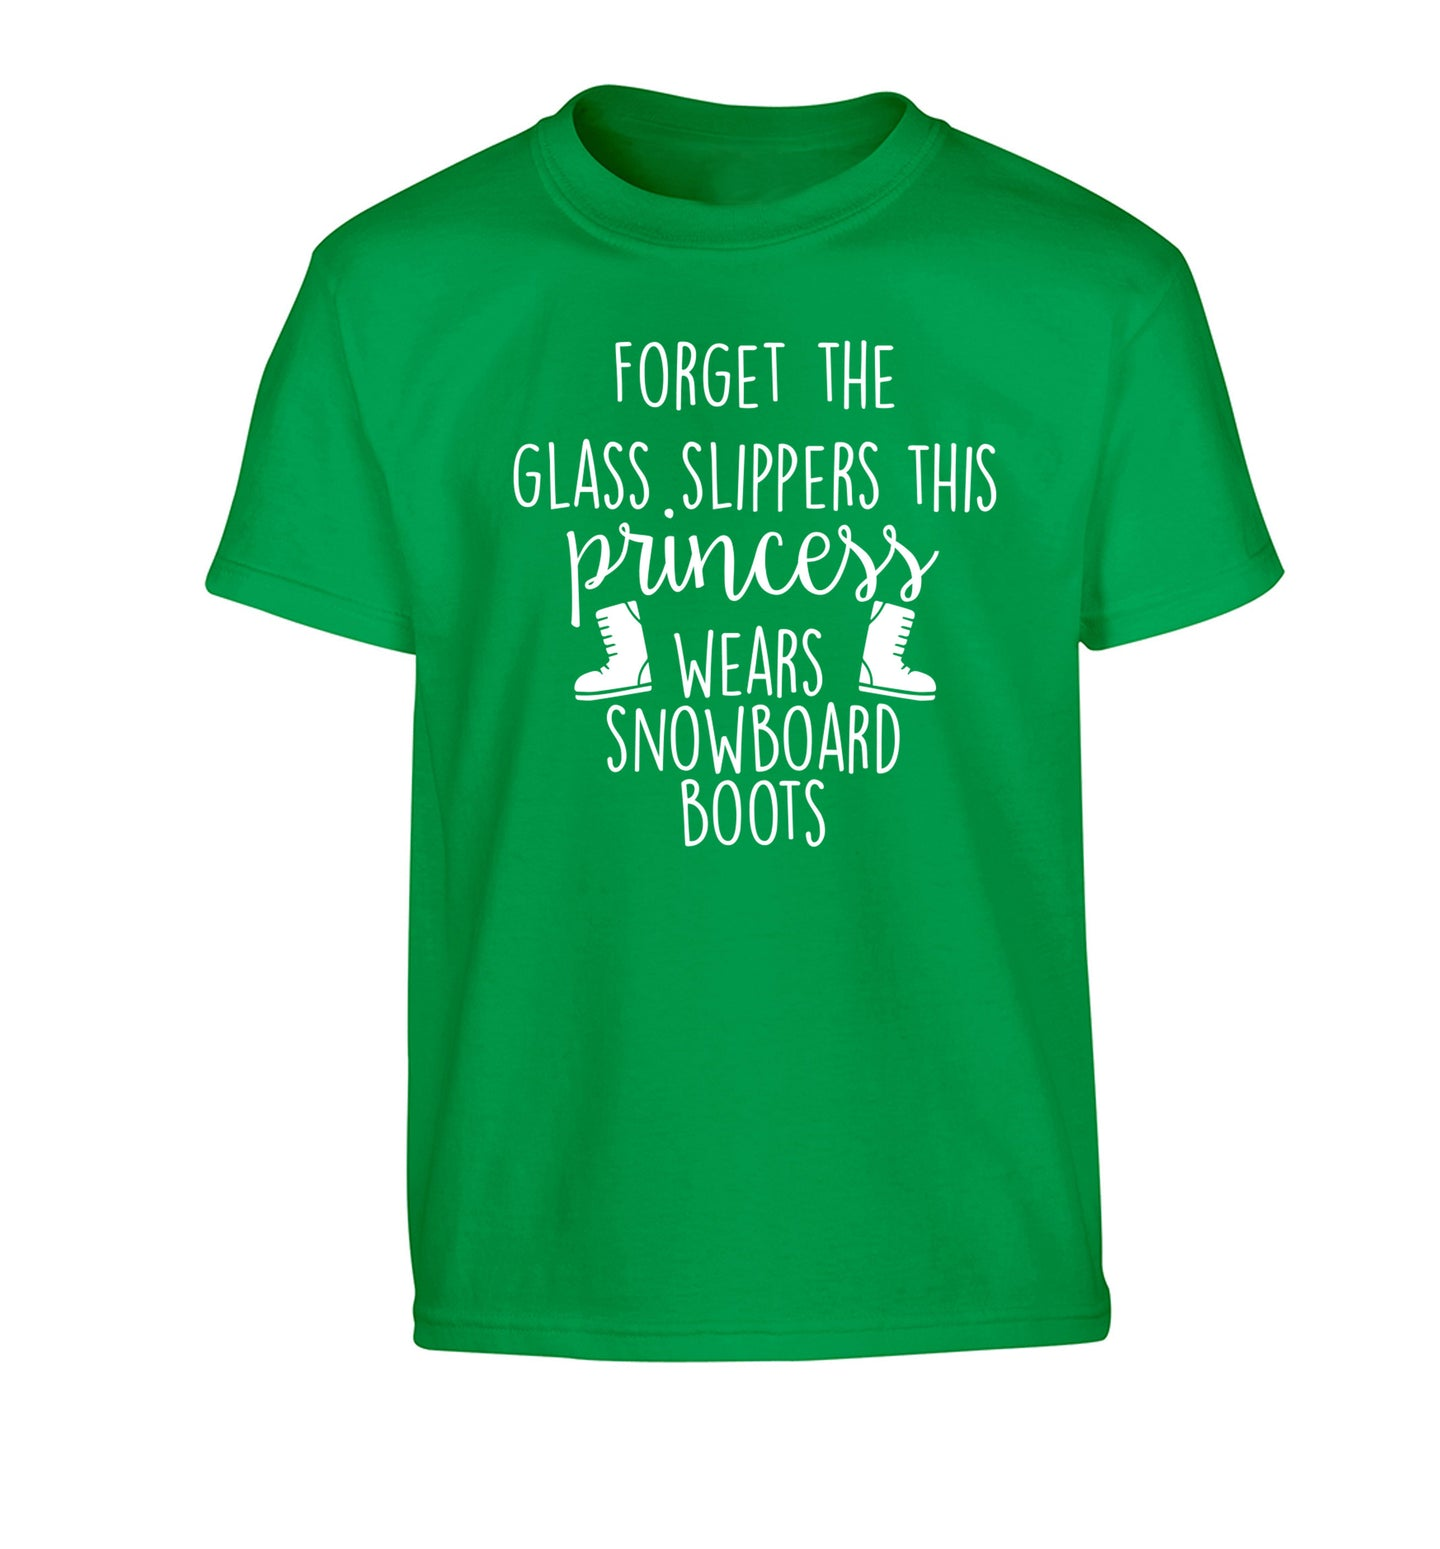 Forget the glass slippers this princess wears snowboard boots Children's green Tshirt 12-14 Years